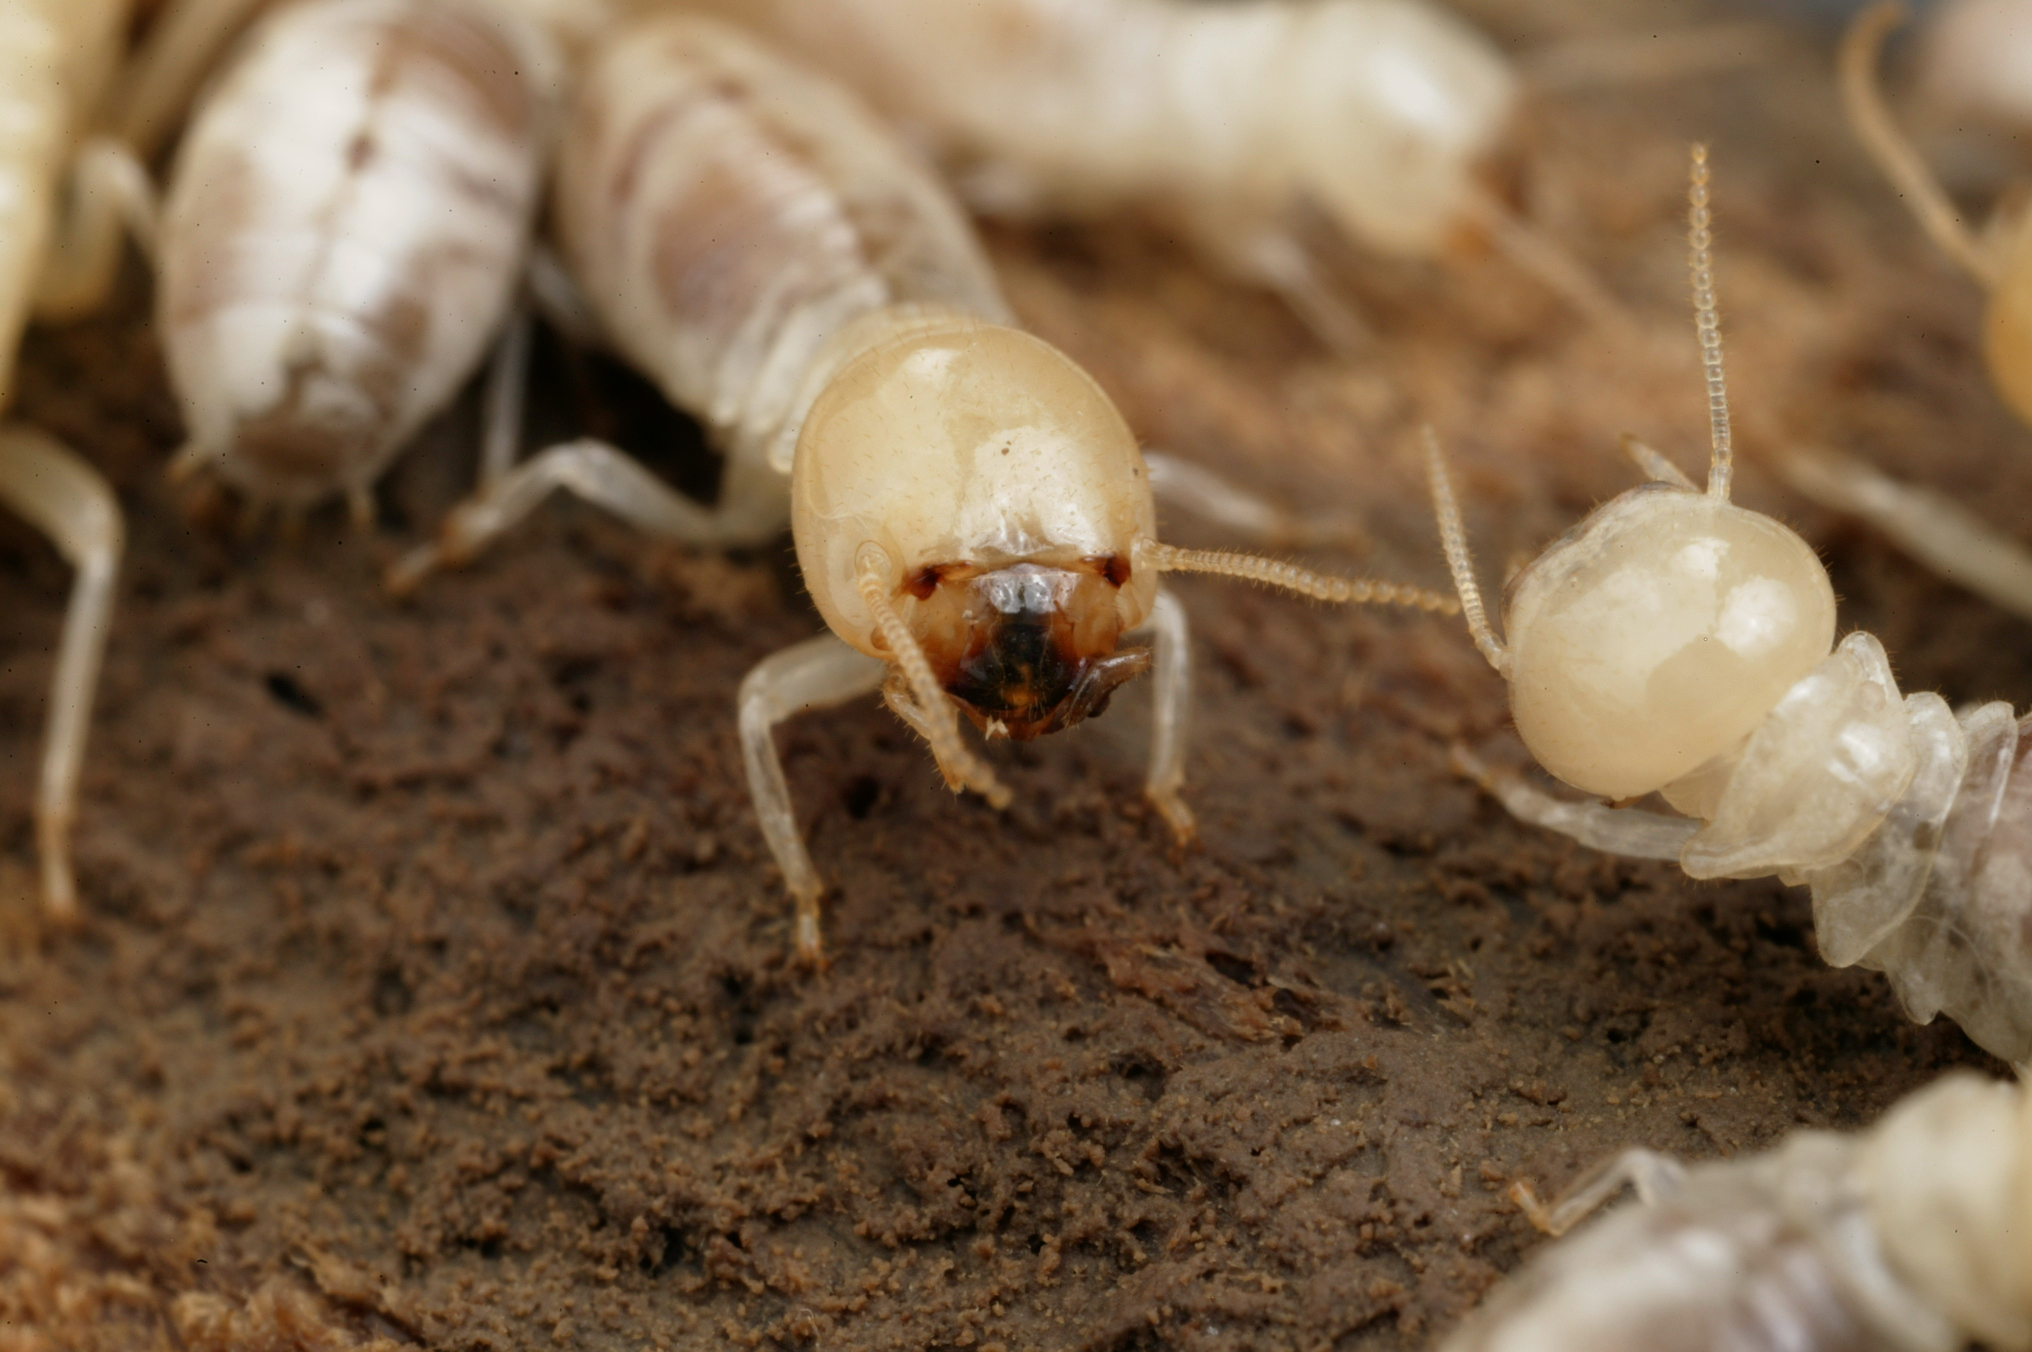 termites cause great damage to homes in Gold Coast, QLD